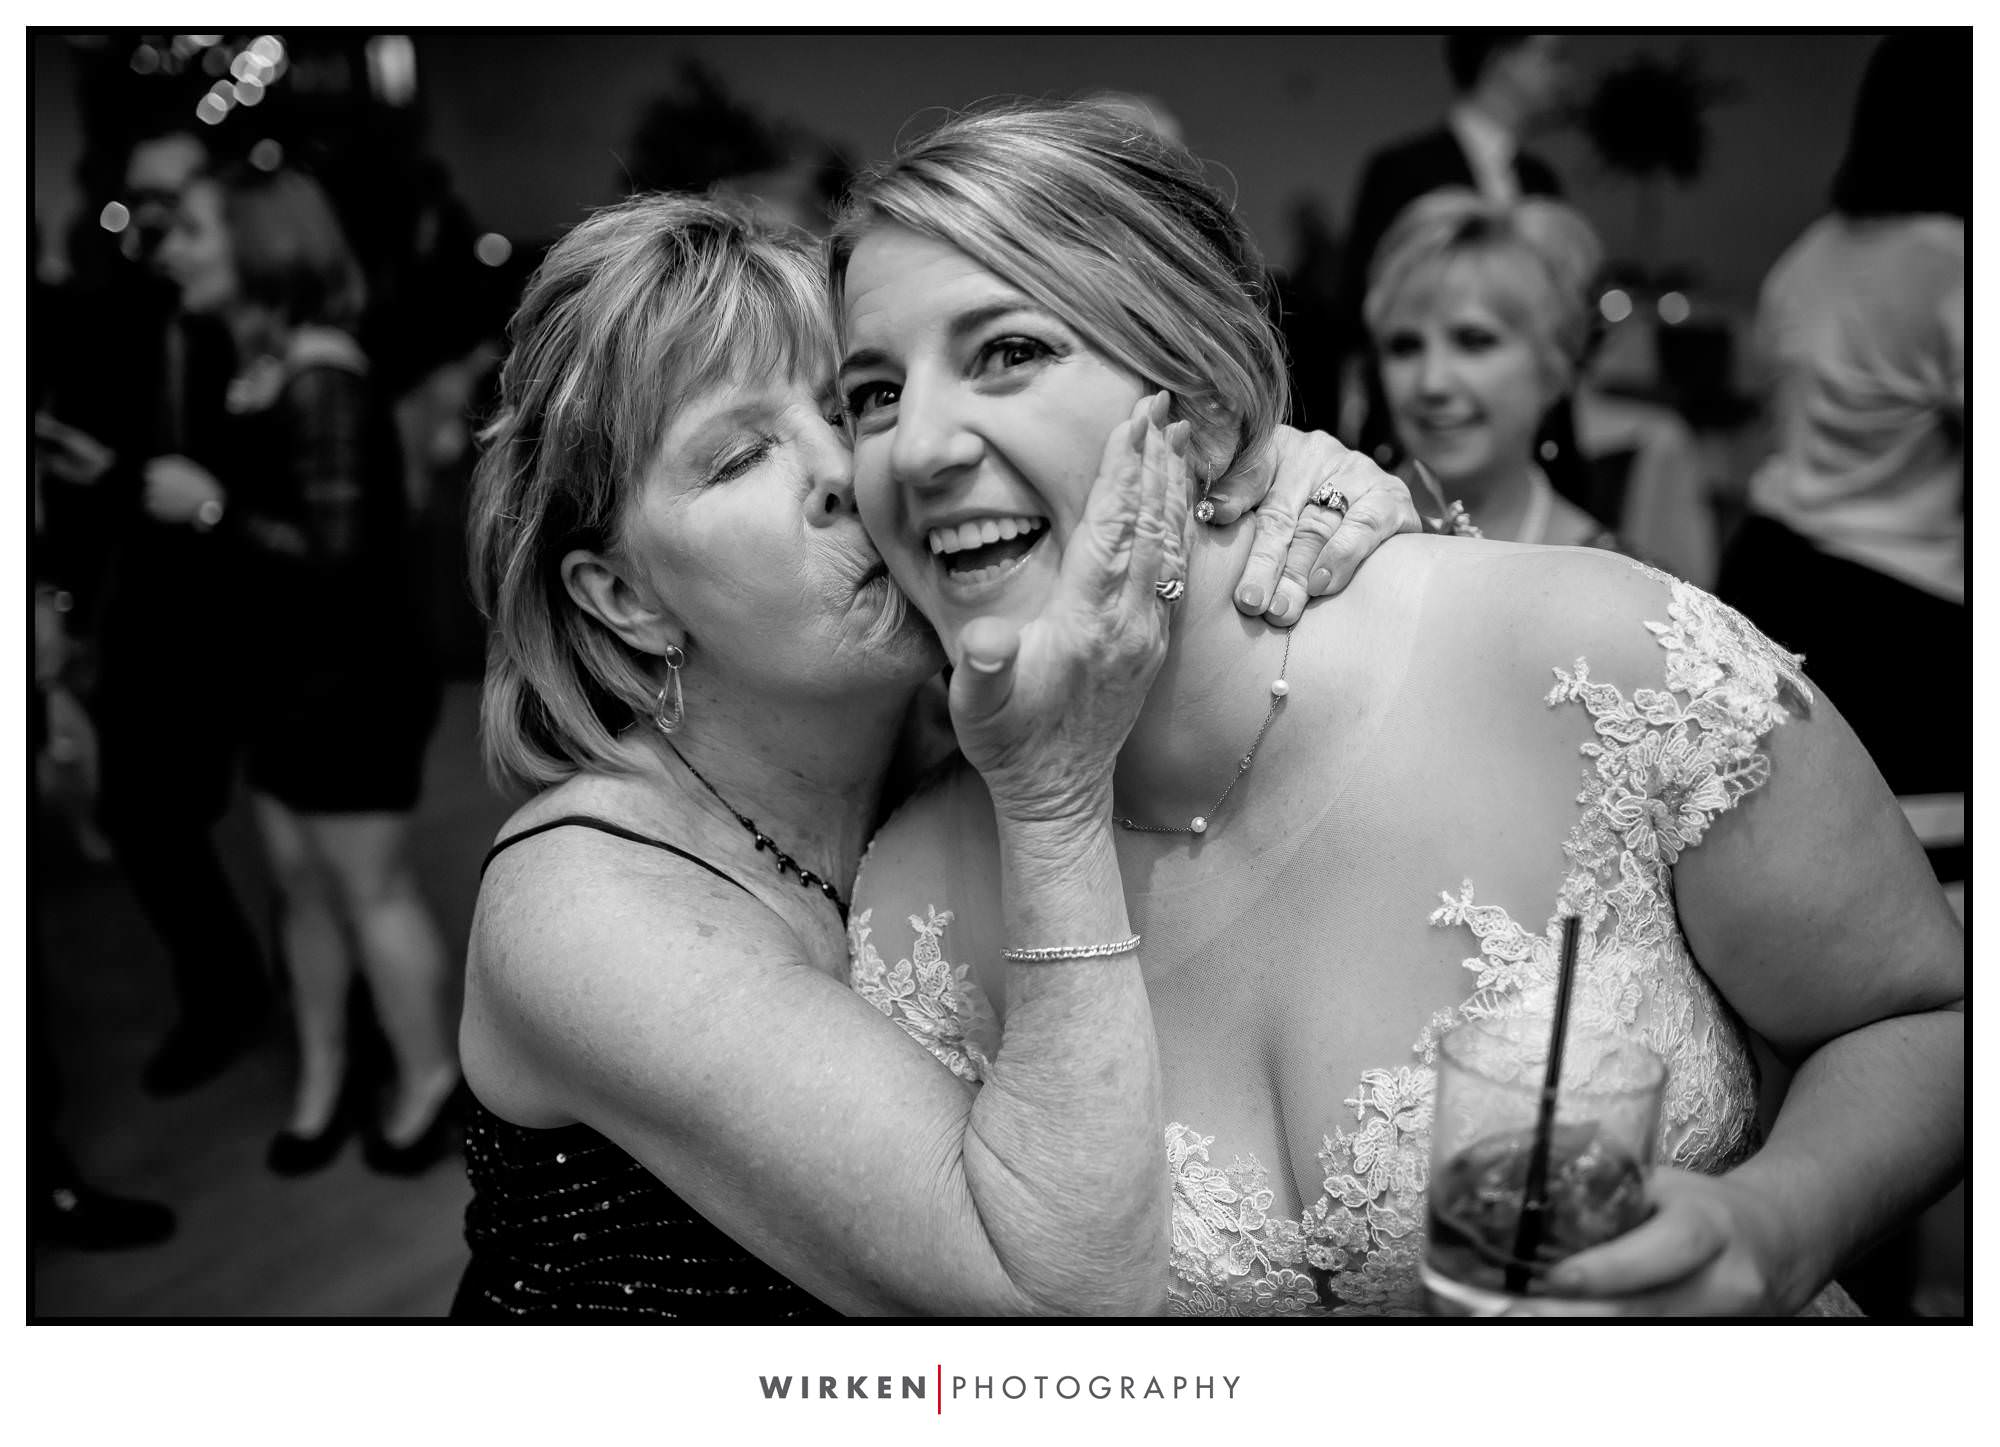 Leah gets a smooch from her mom at her wedding reception.